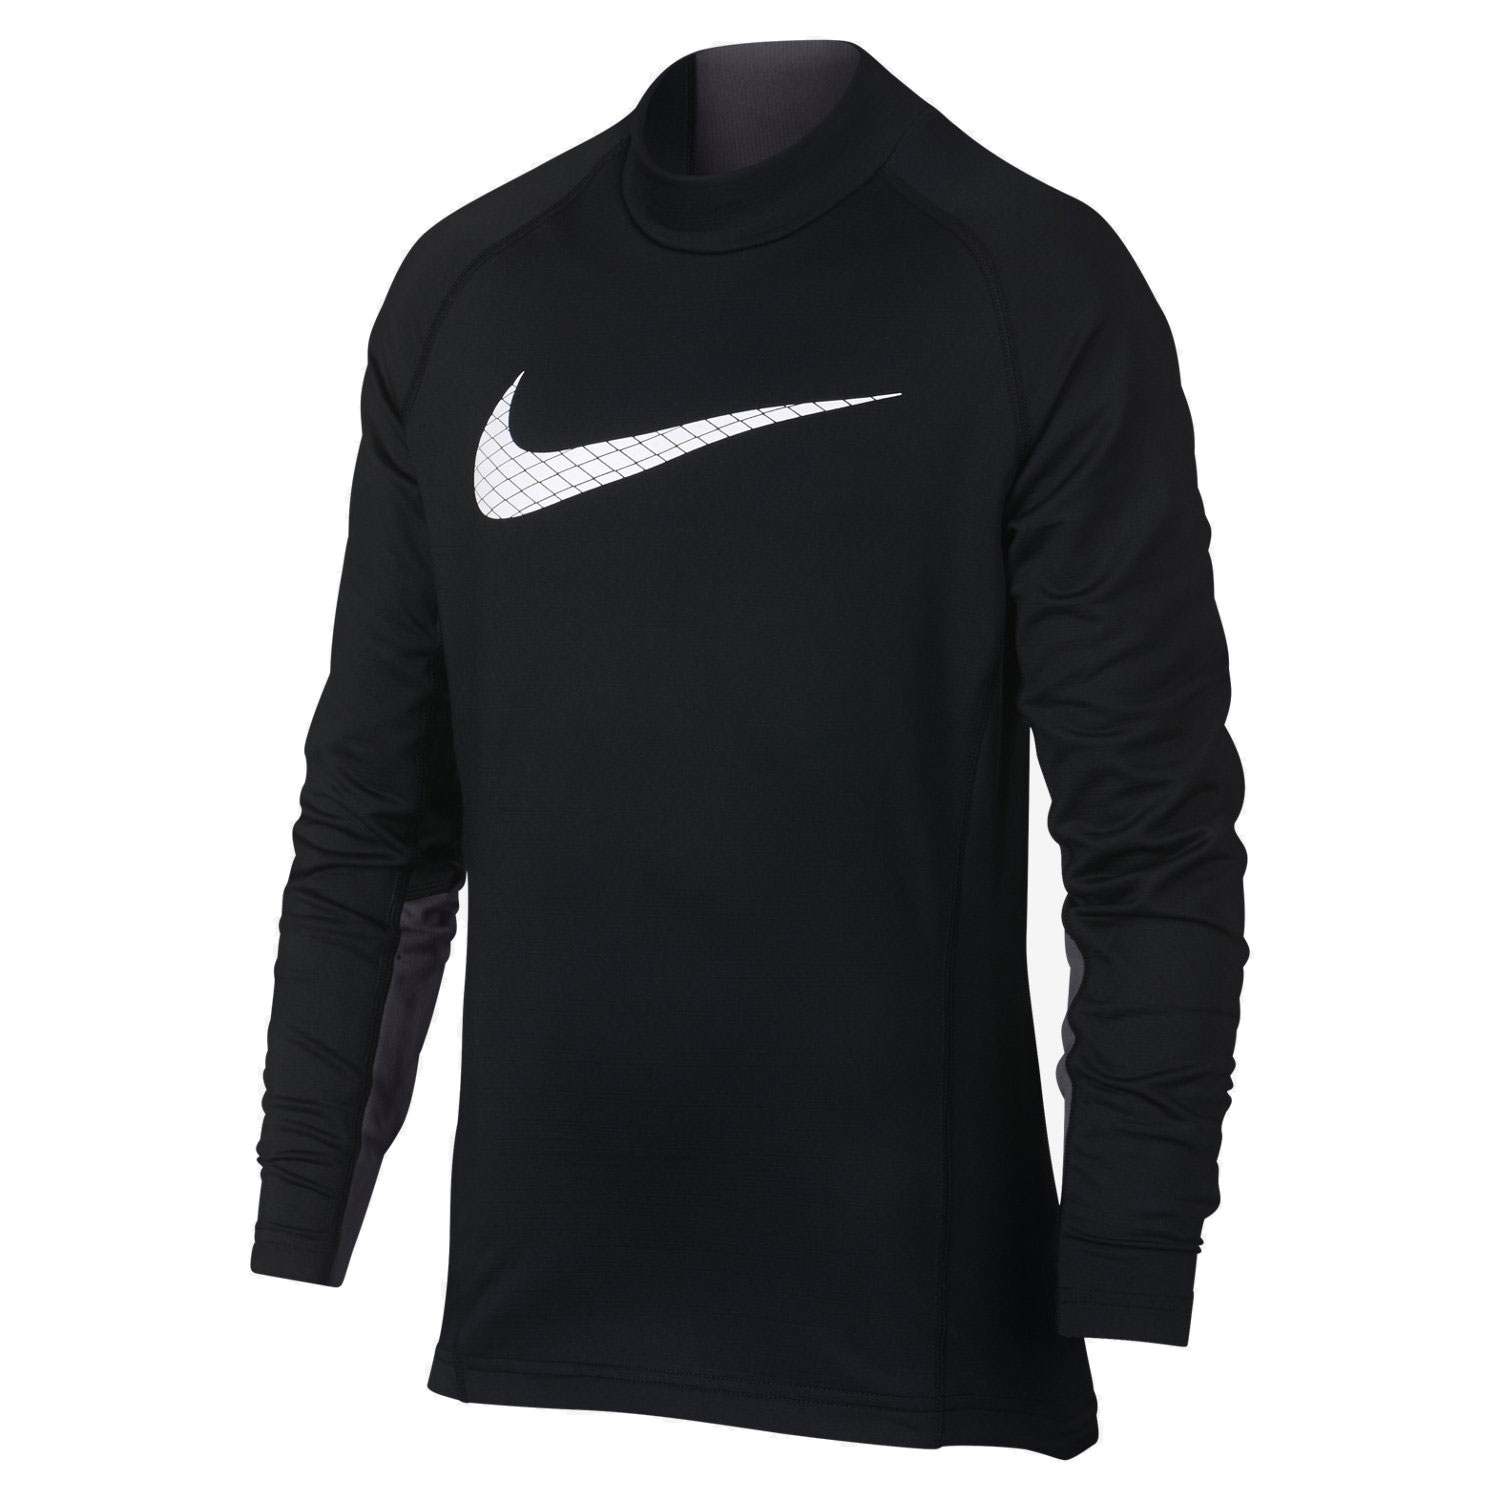 БЕЛЬЕ NIKE PRO ВОДОЛАЗКА WM TOP LS MOCK GFX AH3997-010 JR